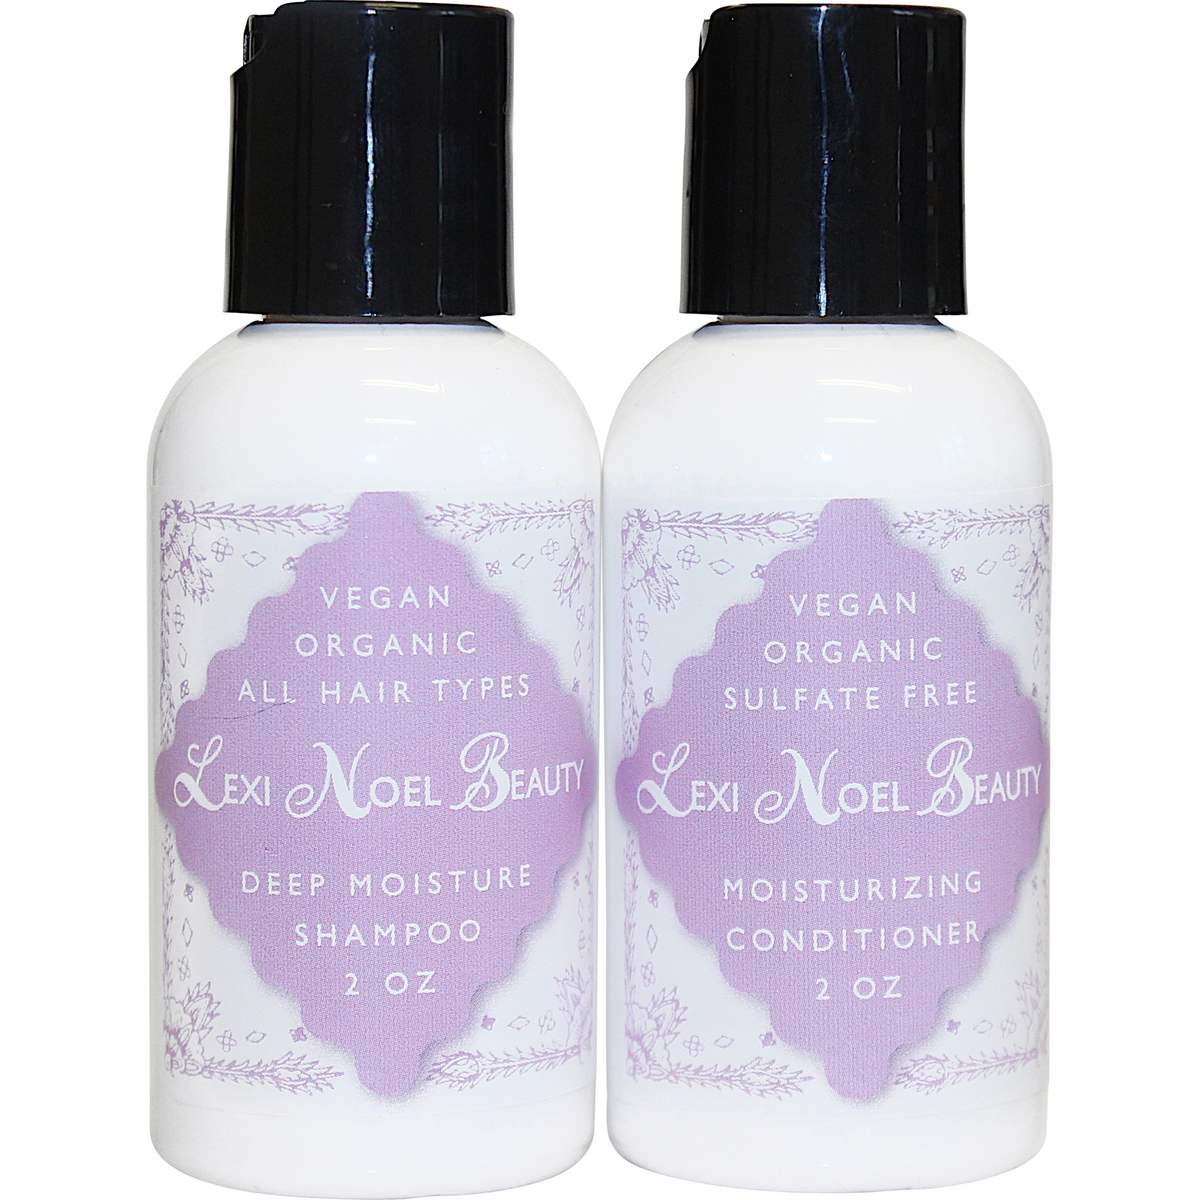 Lexi Noel Beauty Travel Size Shampoo and Conditioner - lexinoelbeauty.com